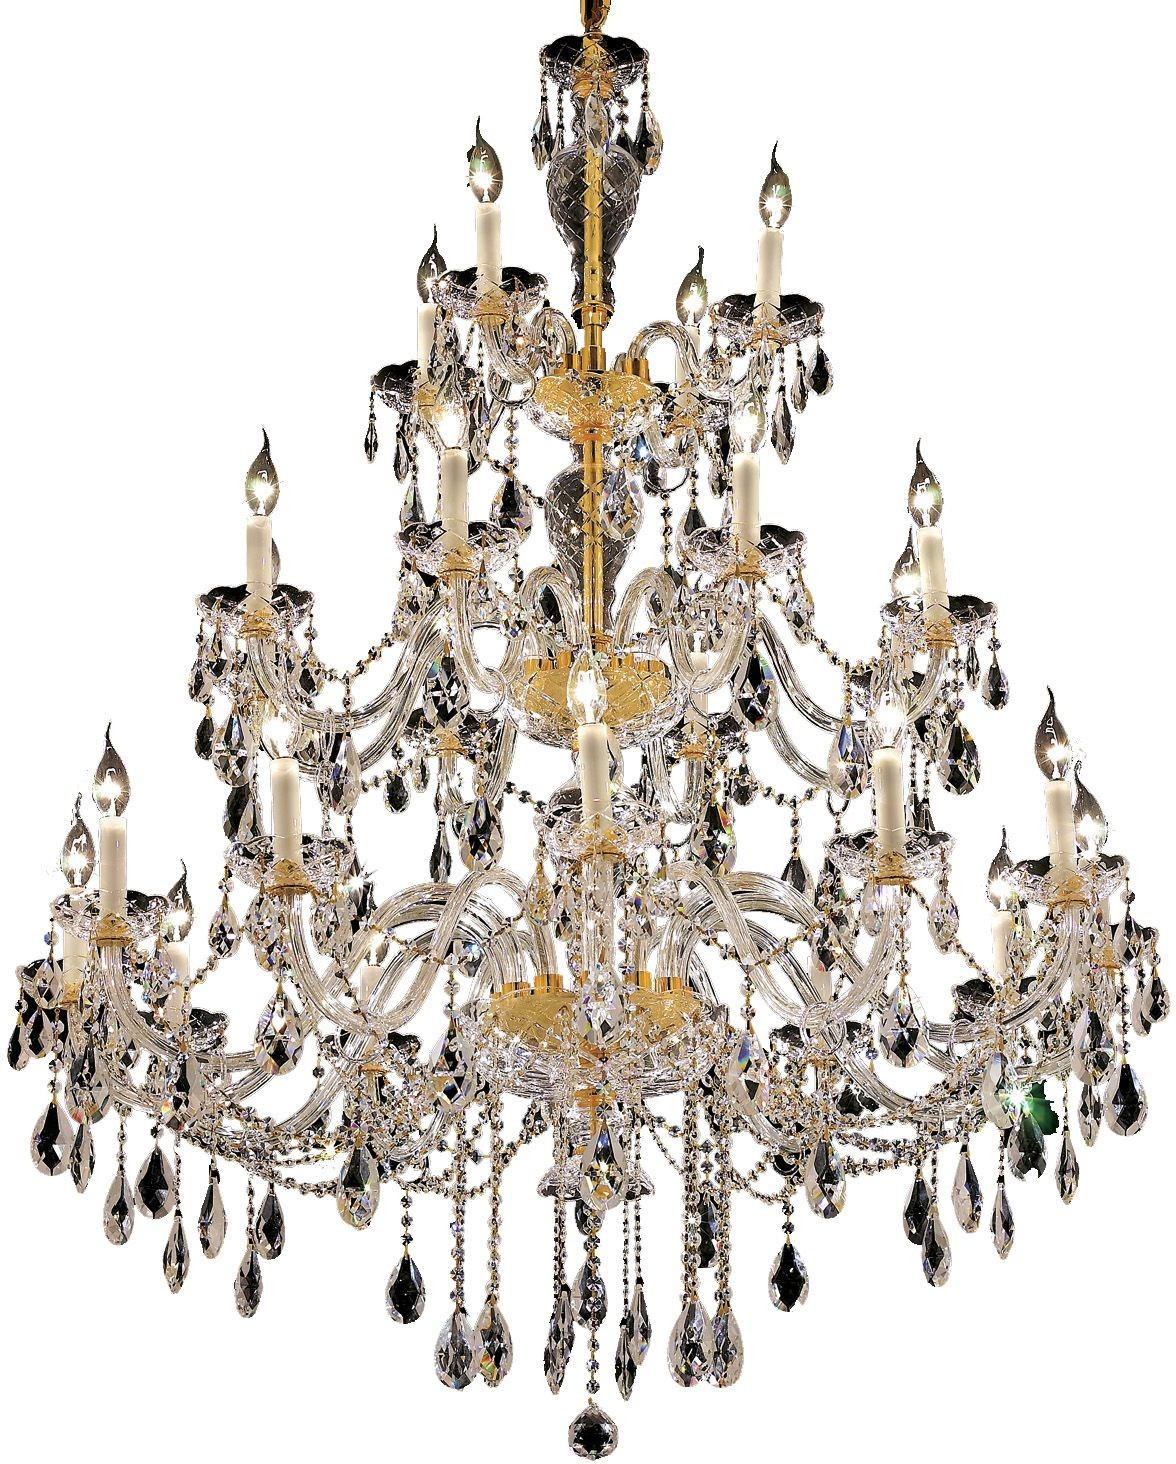 7829g45g rc alexandria 45 gold 24 light chandelier with clear royal cut crystal trim from elegant lighting 7829g45g rc homegallerystores com